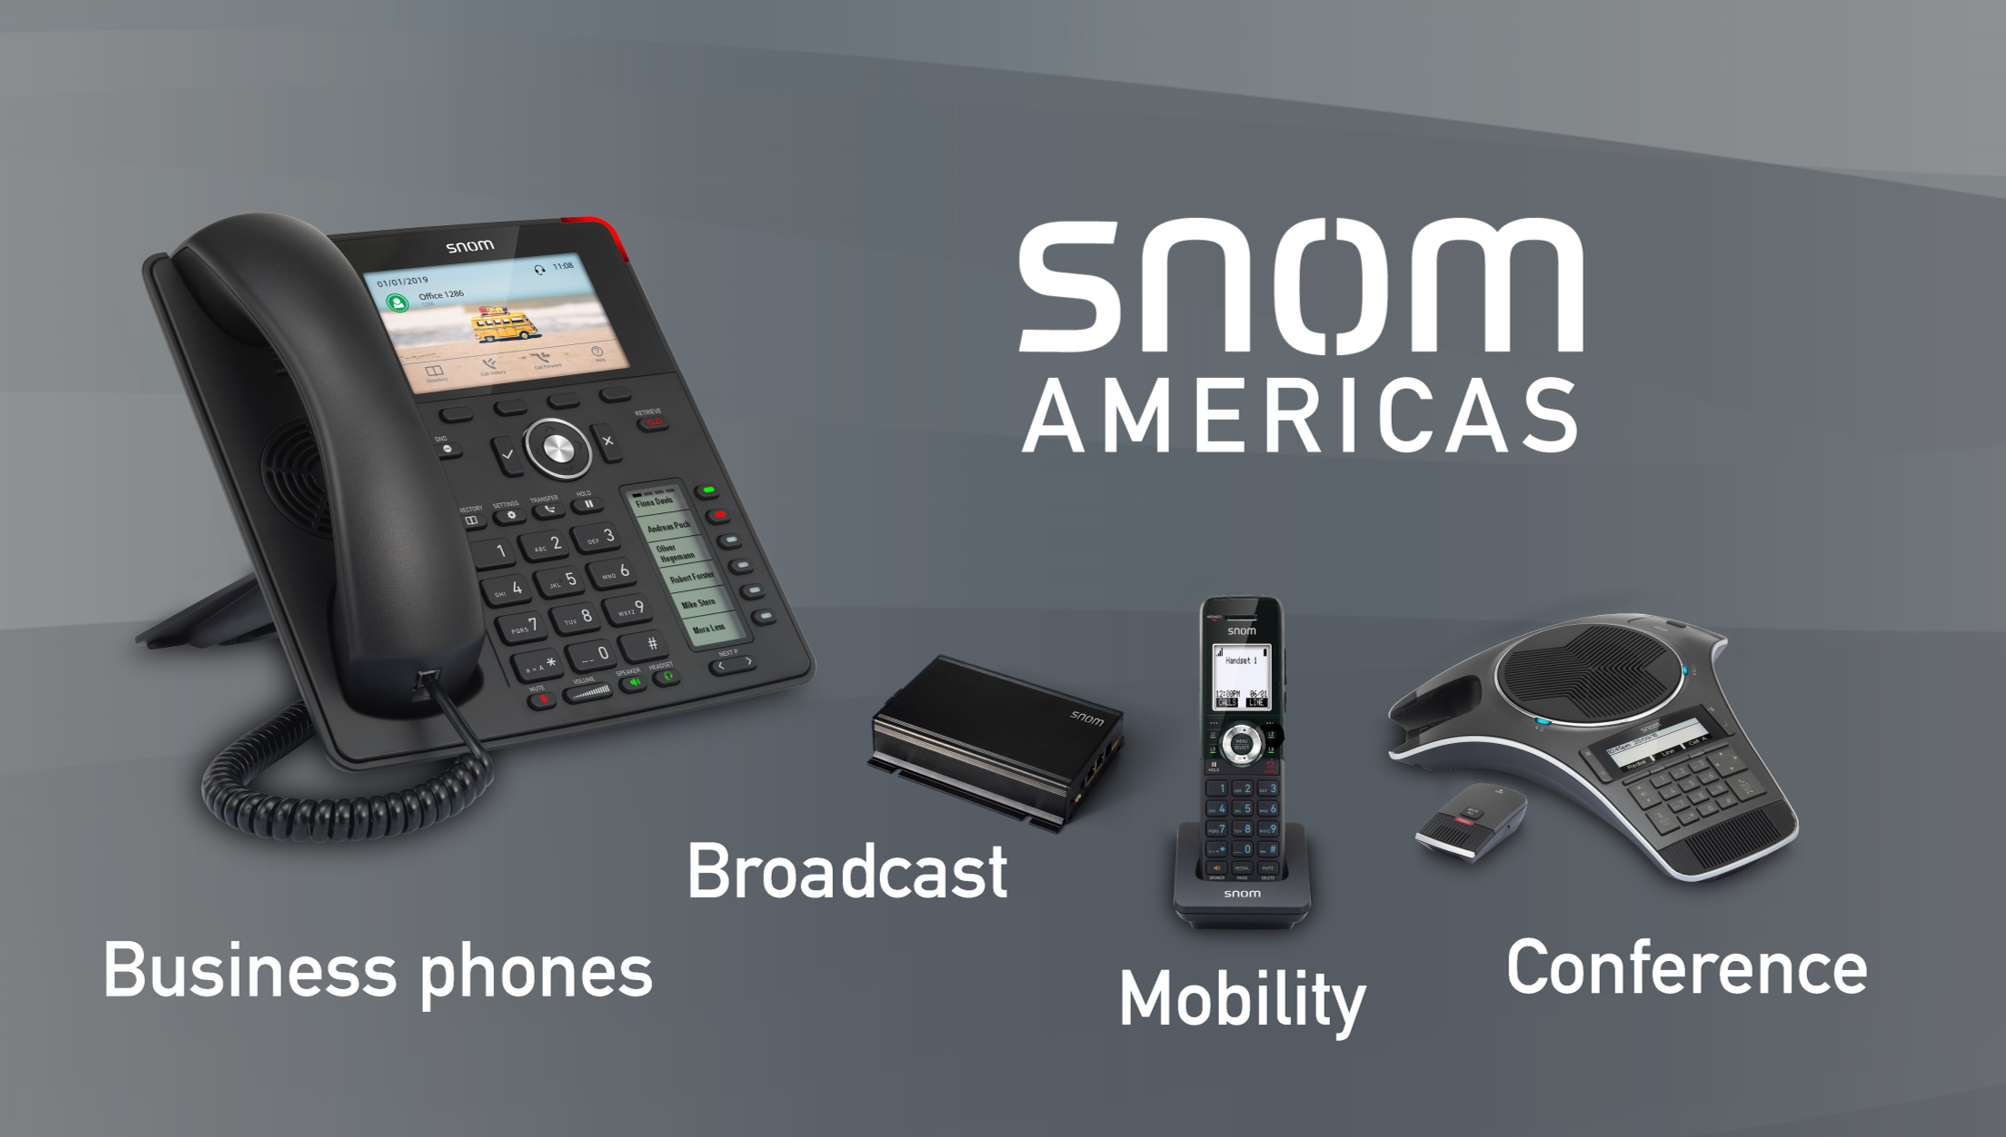 Snom_Business phones_mobility_conference_VoIP_SIP